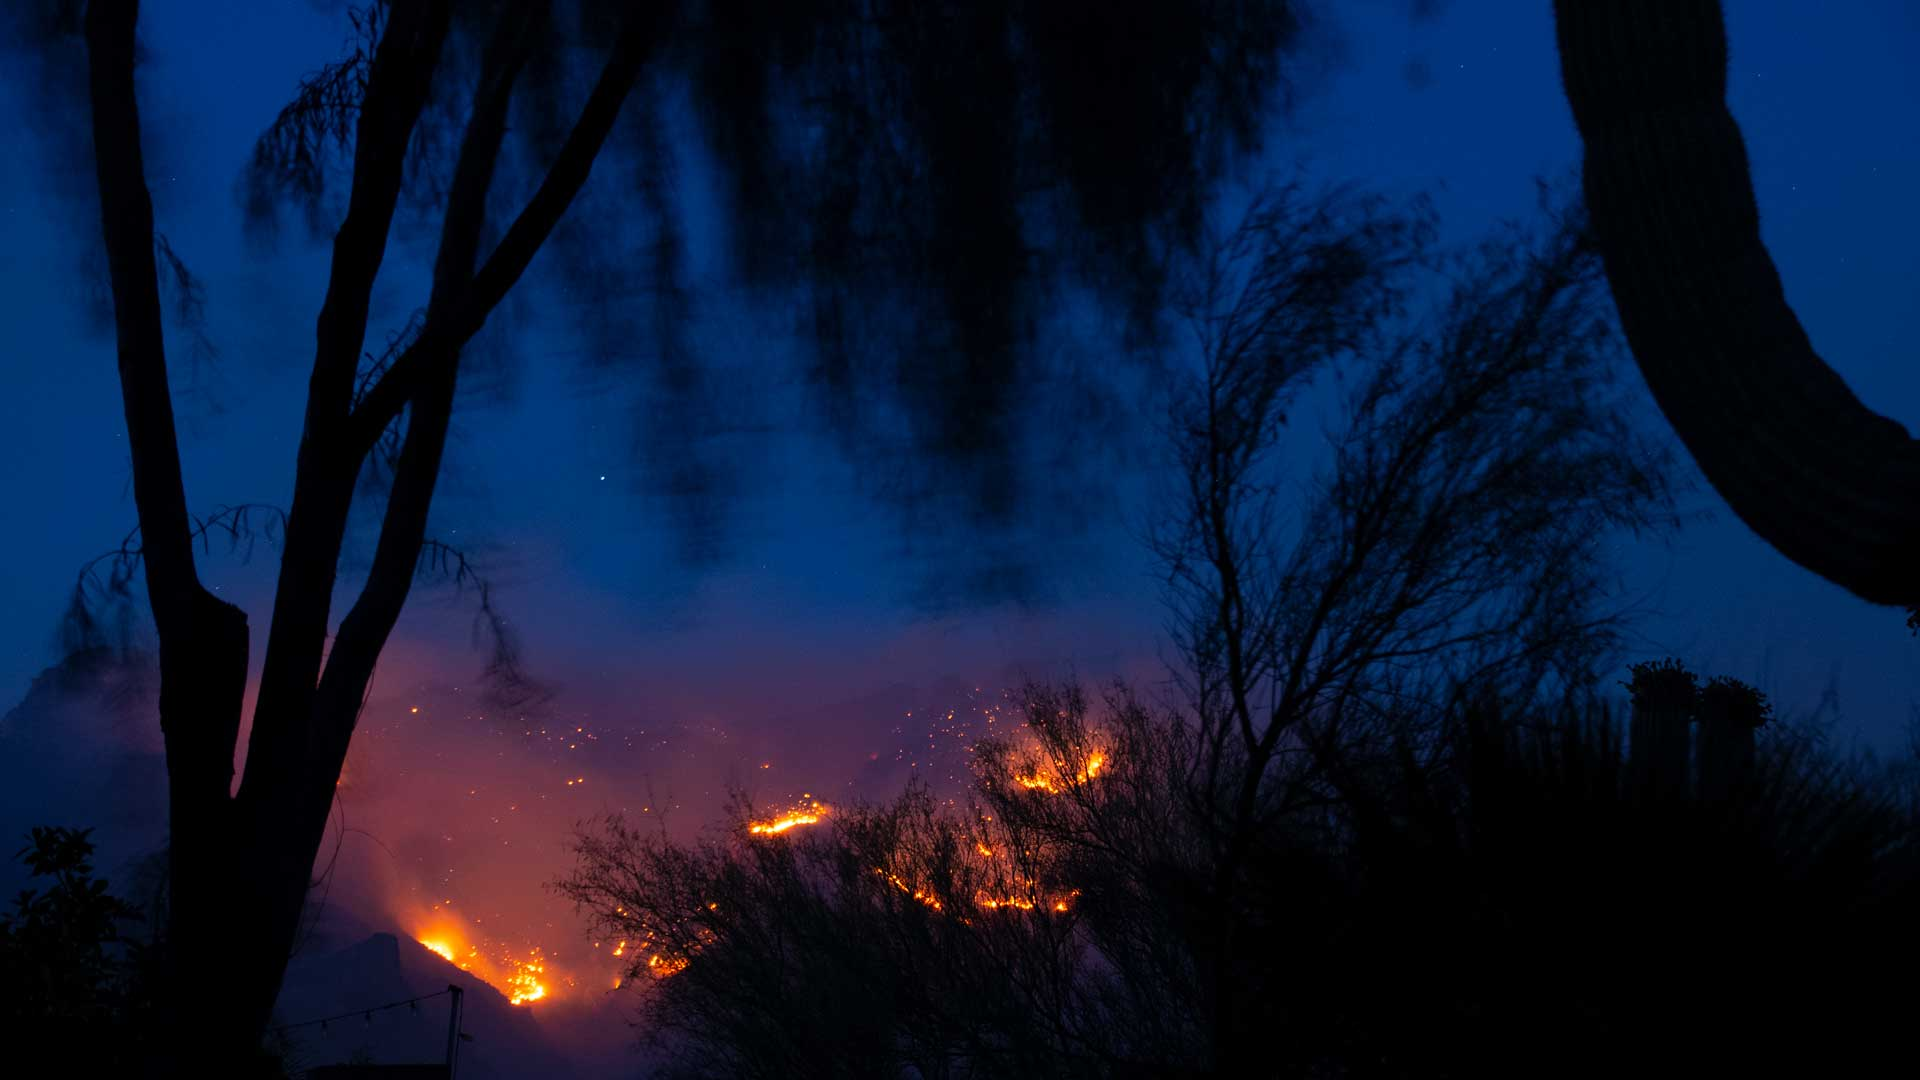 The Bighorn Fire burns in Pima Canyon on the night of June 10, 2020.  Residents in the area were warned to be ready for an evacuation.